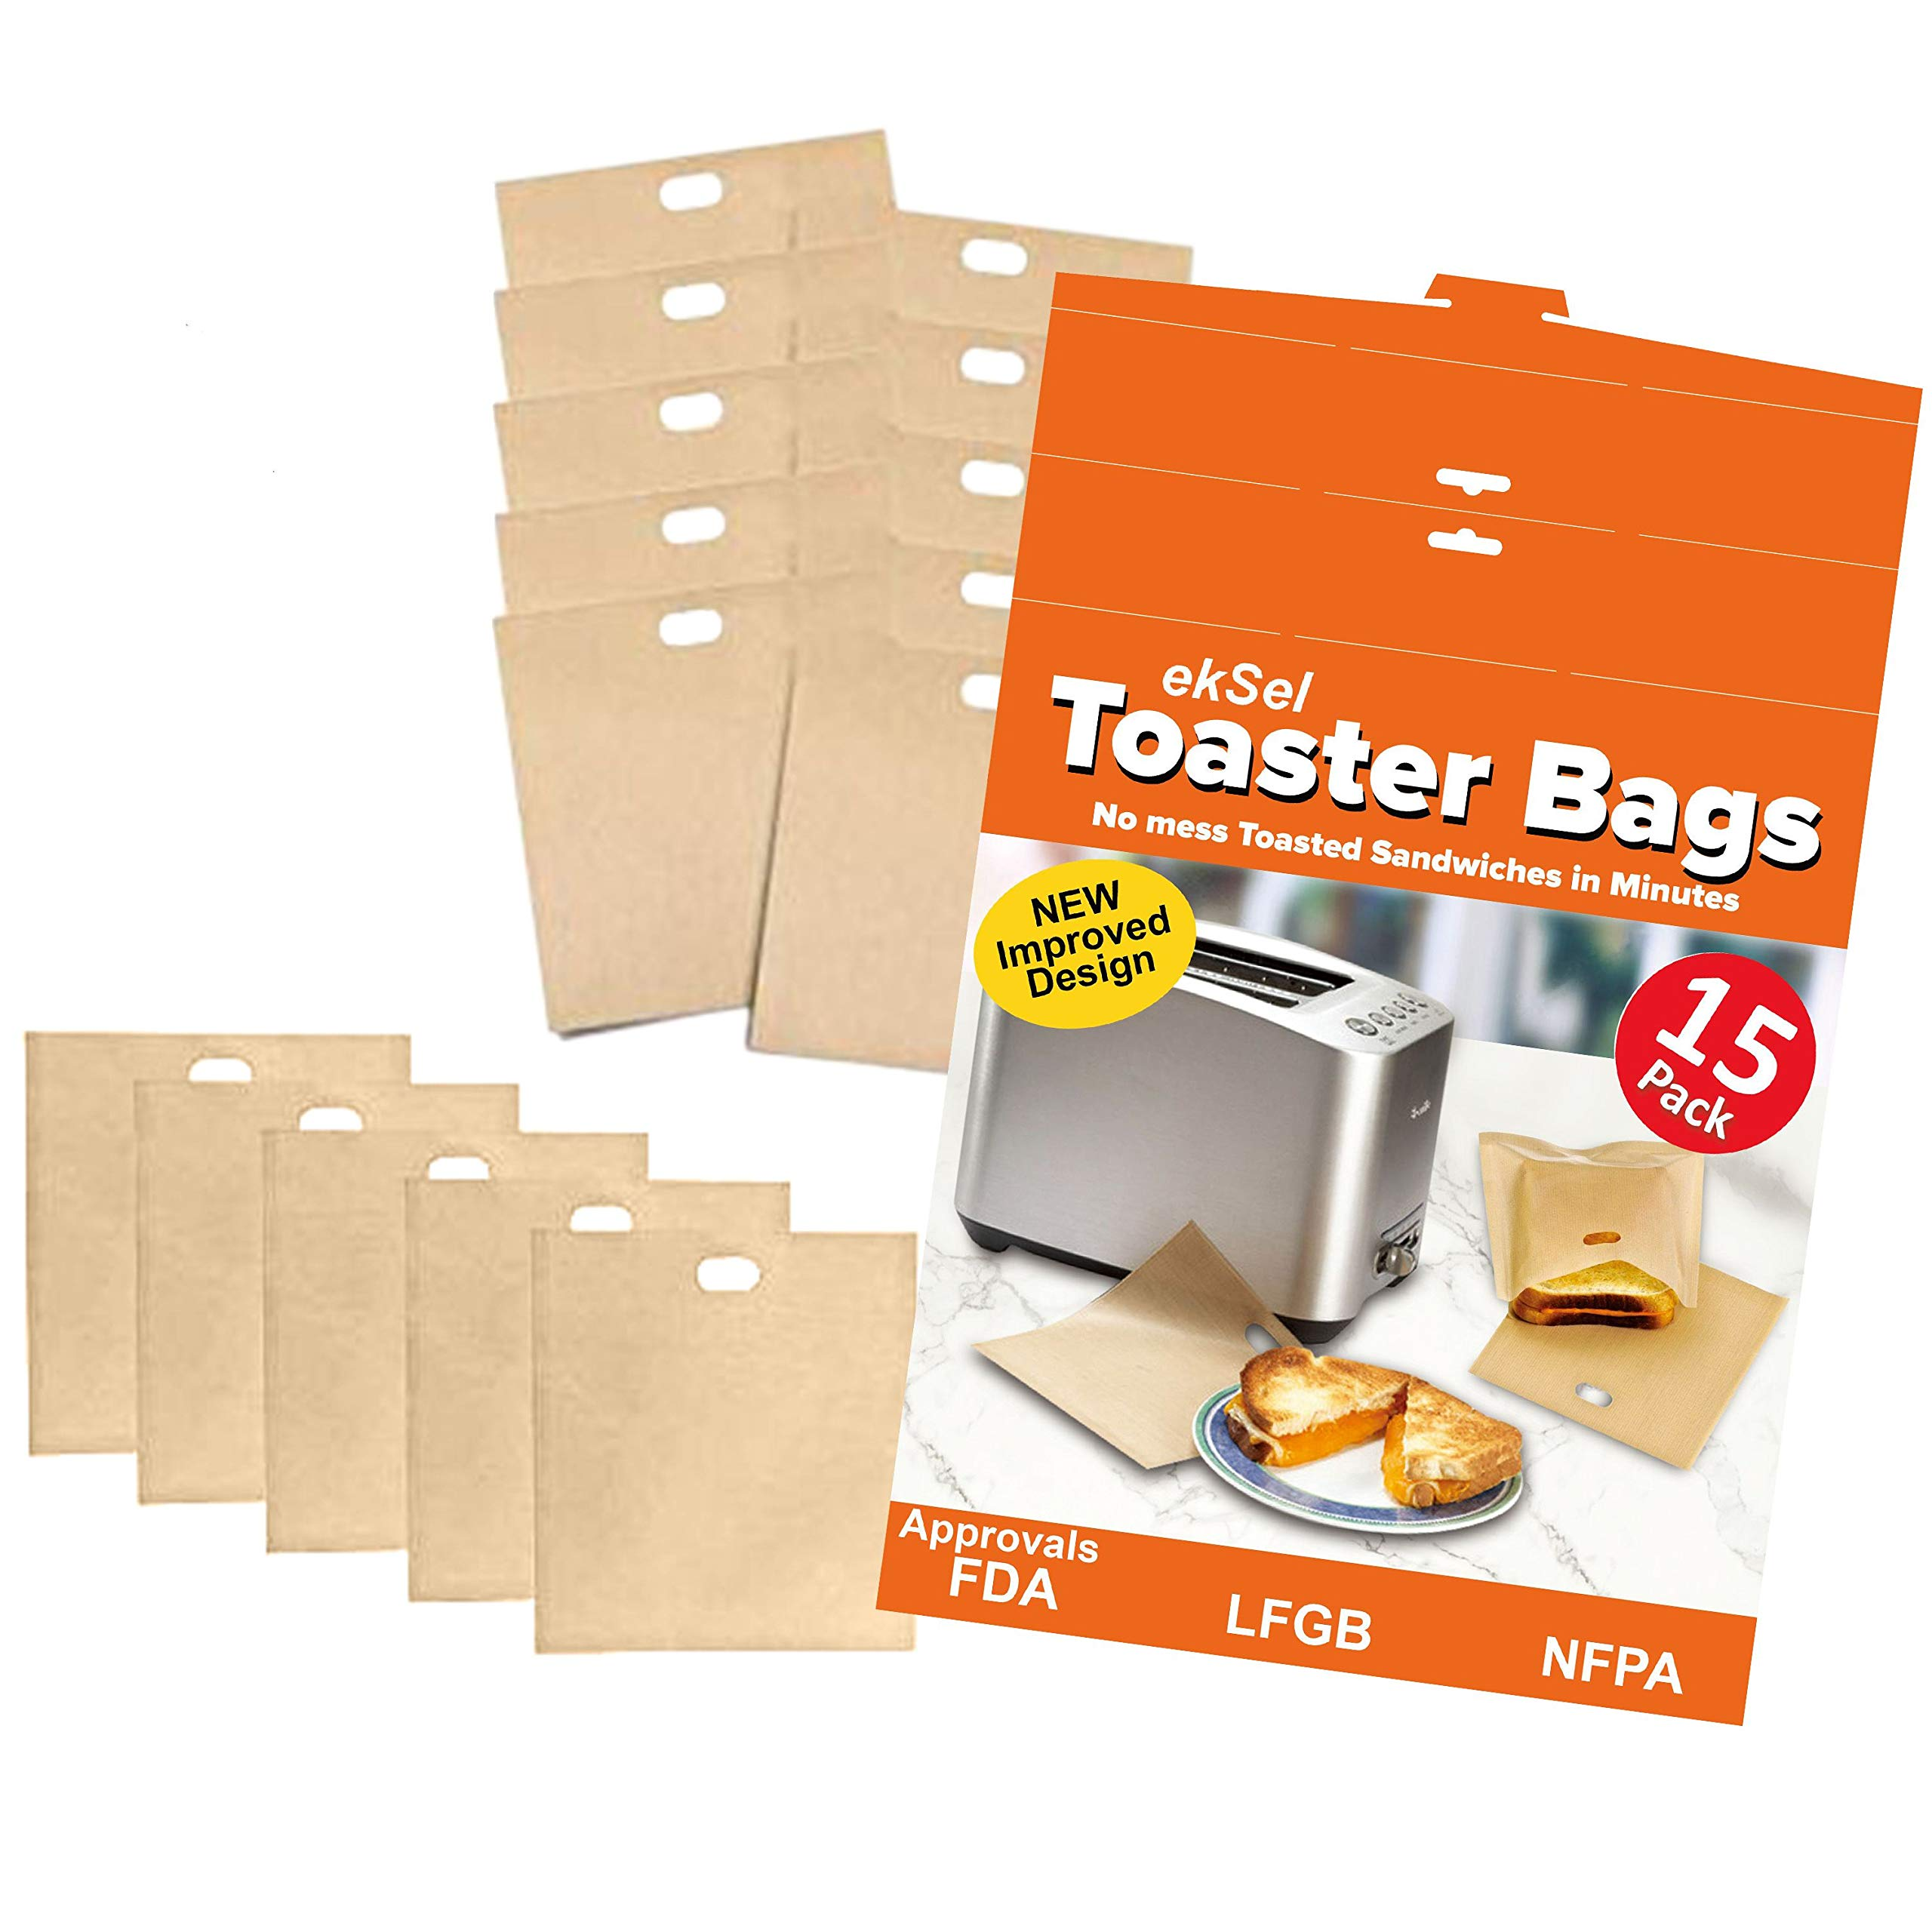 ekSel Toaster Bags Reusable Non-stick Gluten Free Grilled Cheese Nuggets BPA free 15 Pack by ekSel